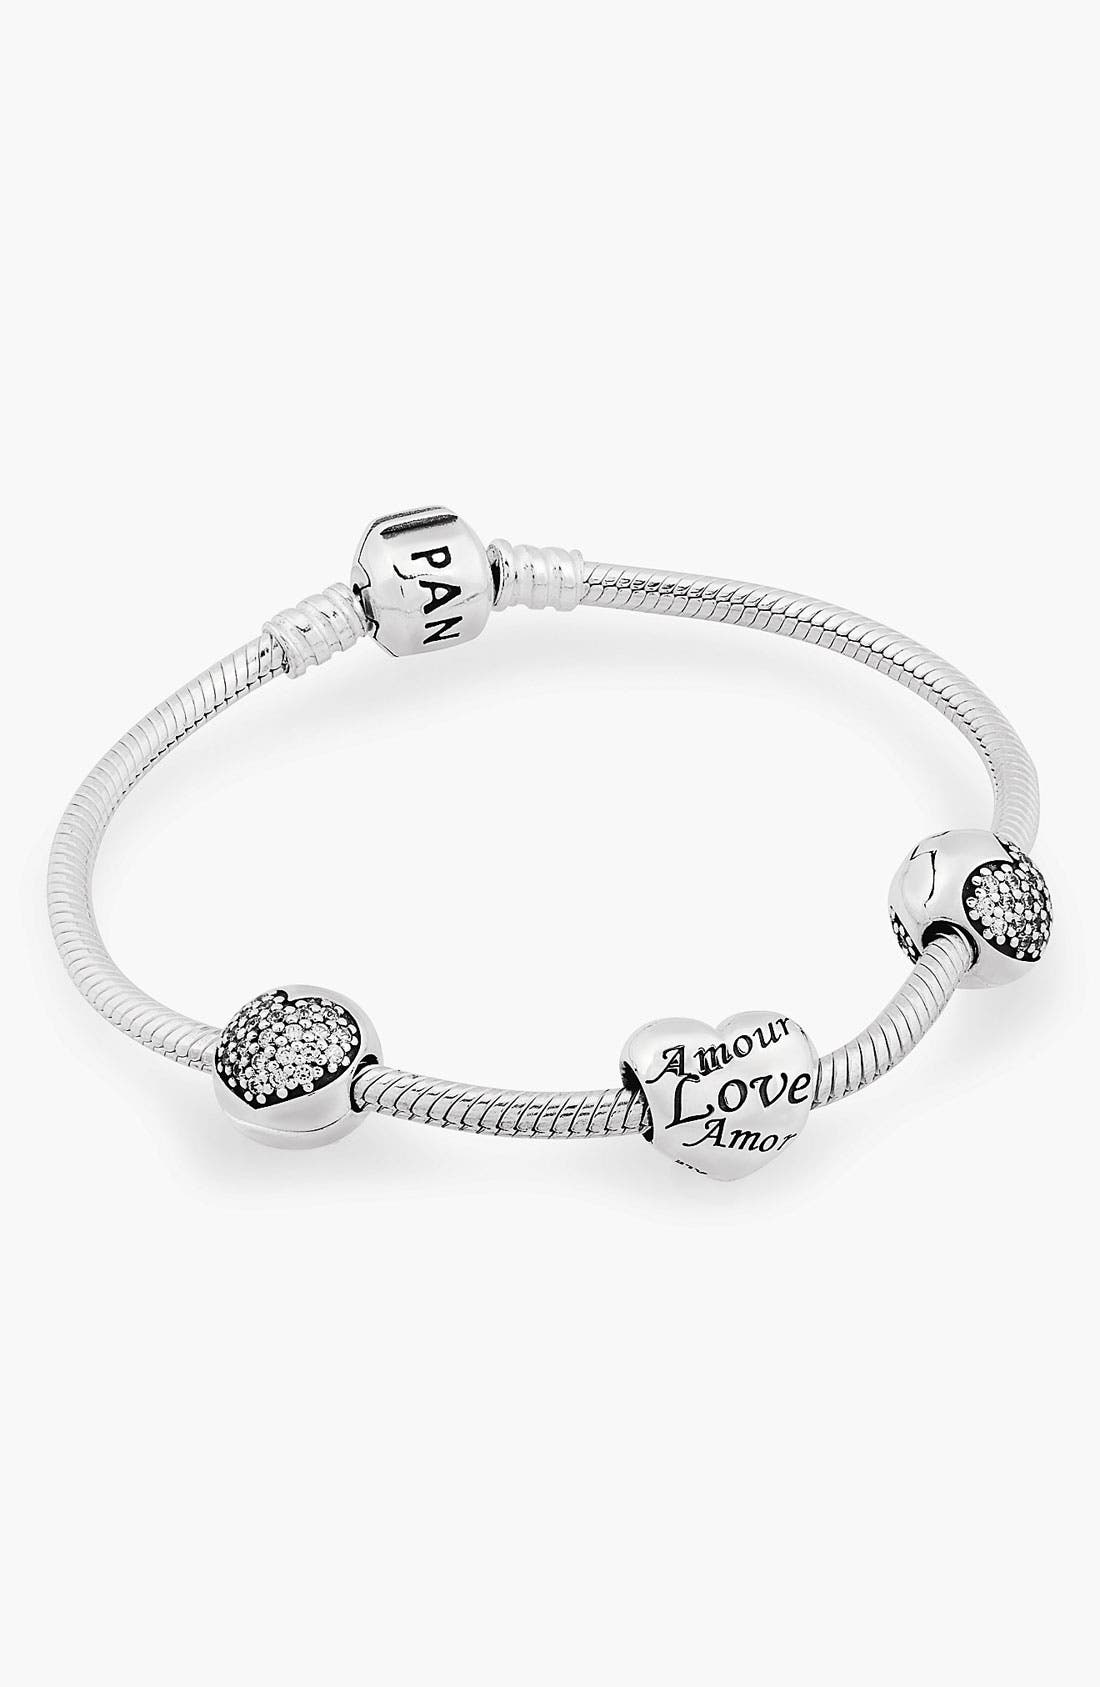 Alternate Image 1 Selected - LOVE OF MY LIFE BRACELET GIFT SET